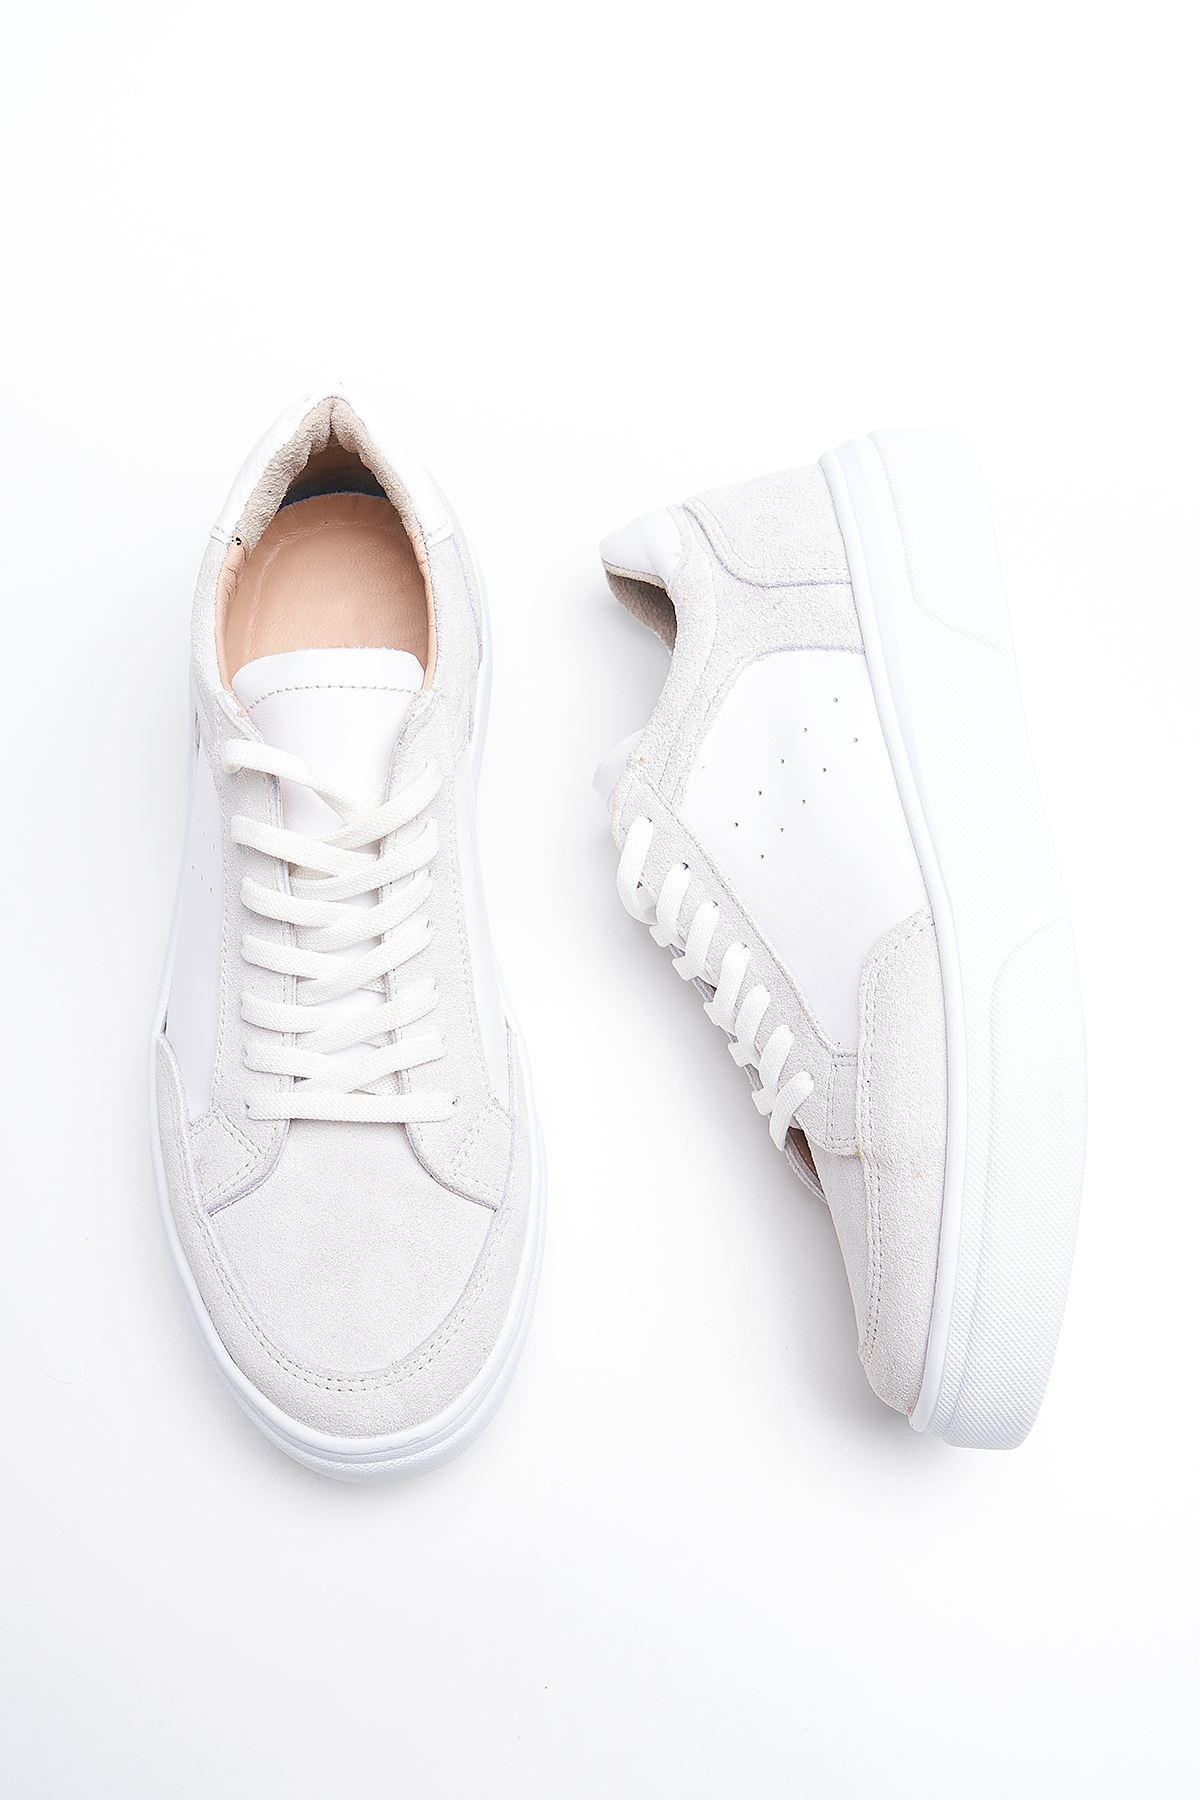 Hedwig White Genuine Leather Women Sneakers